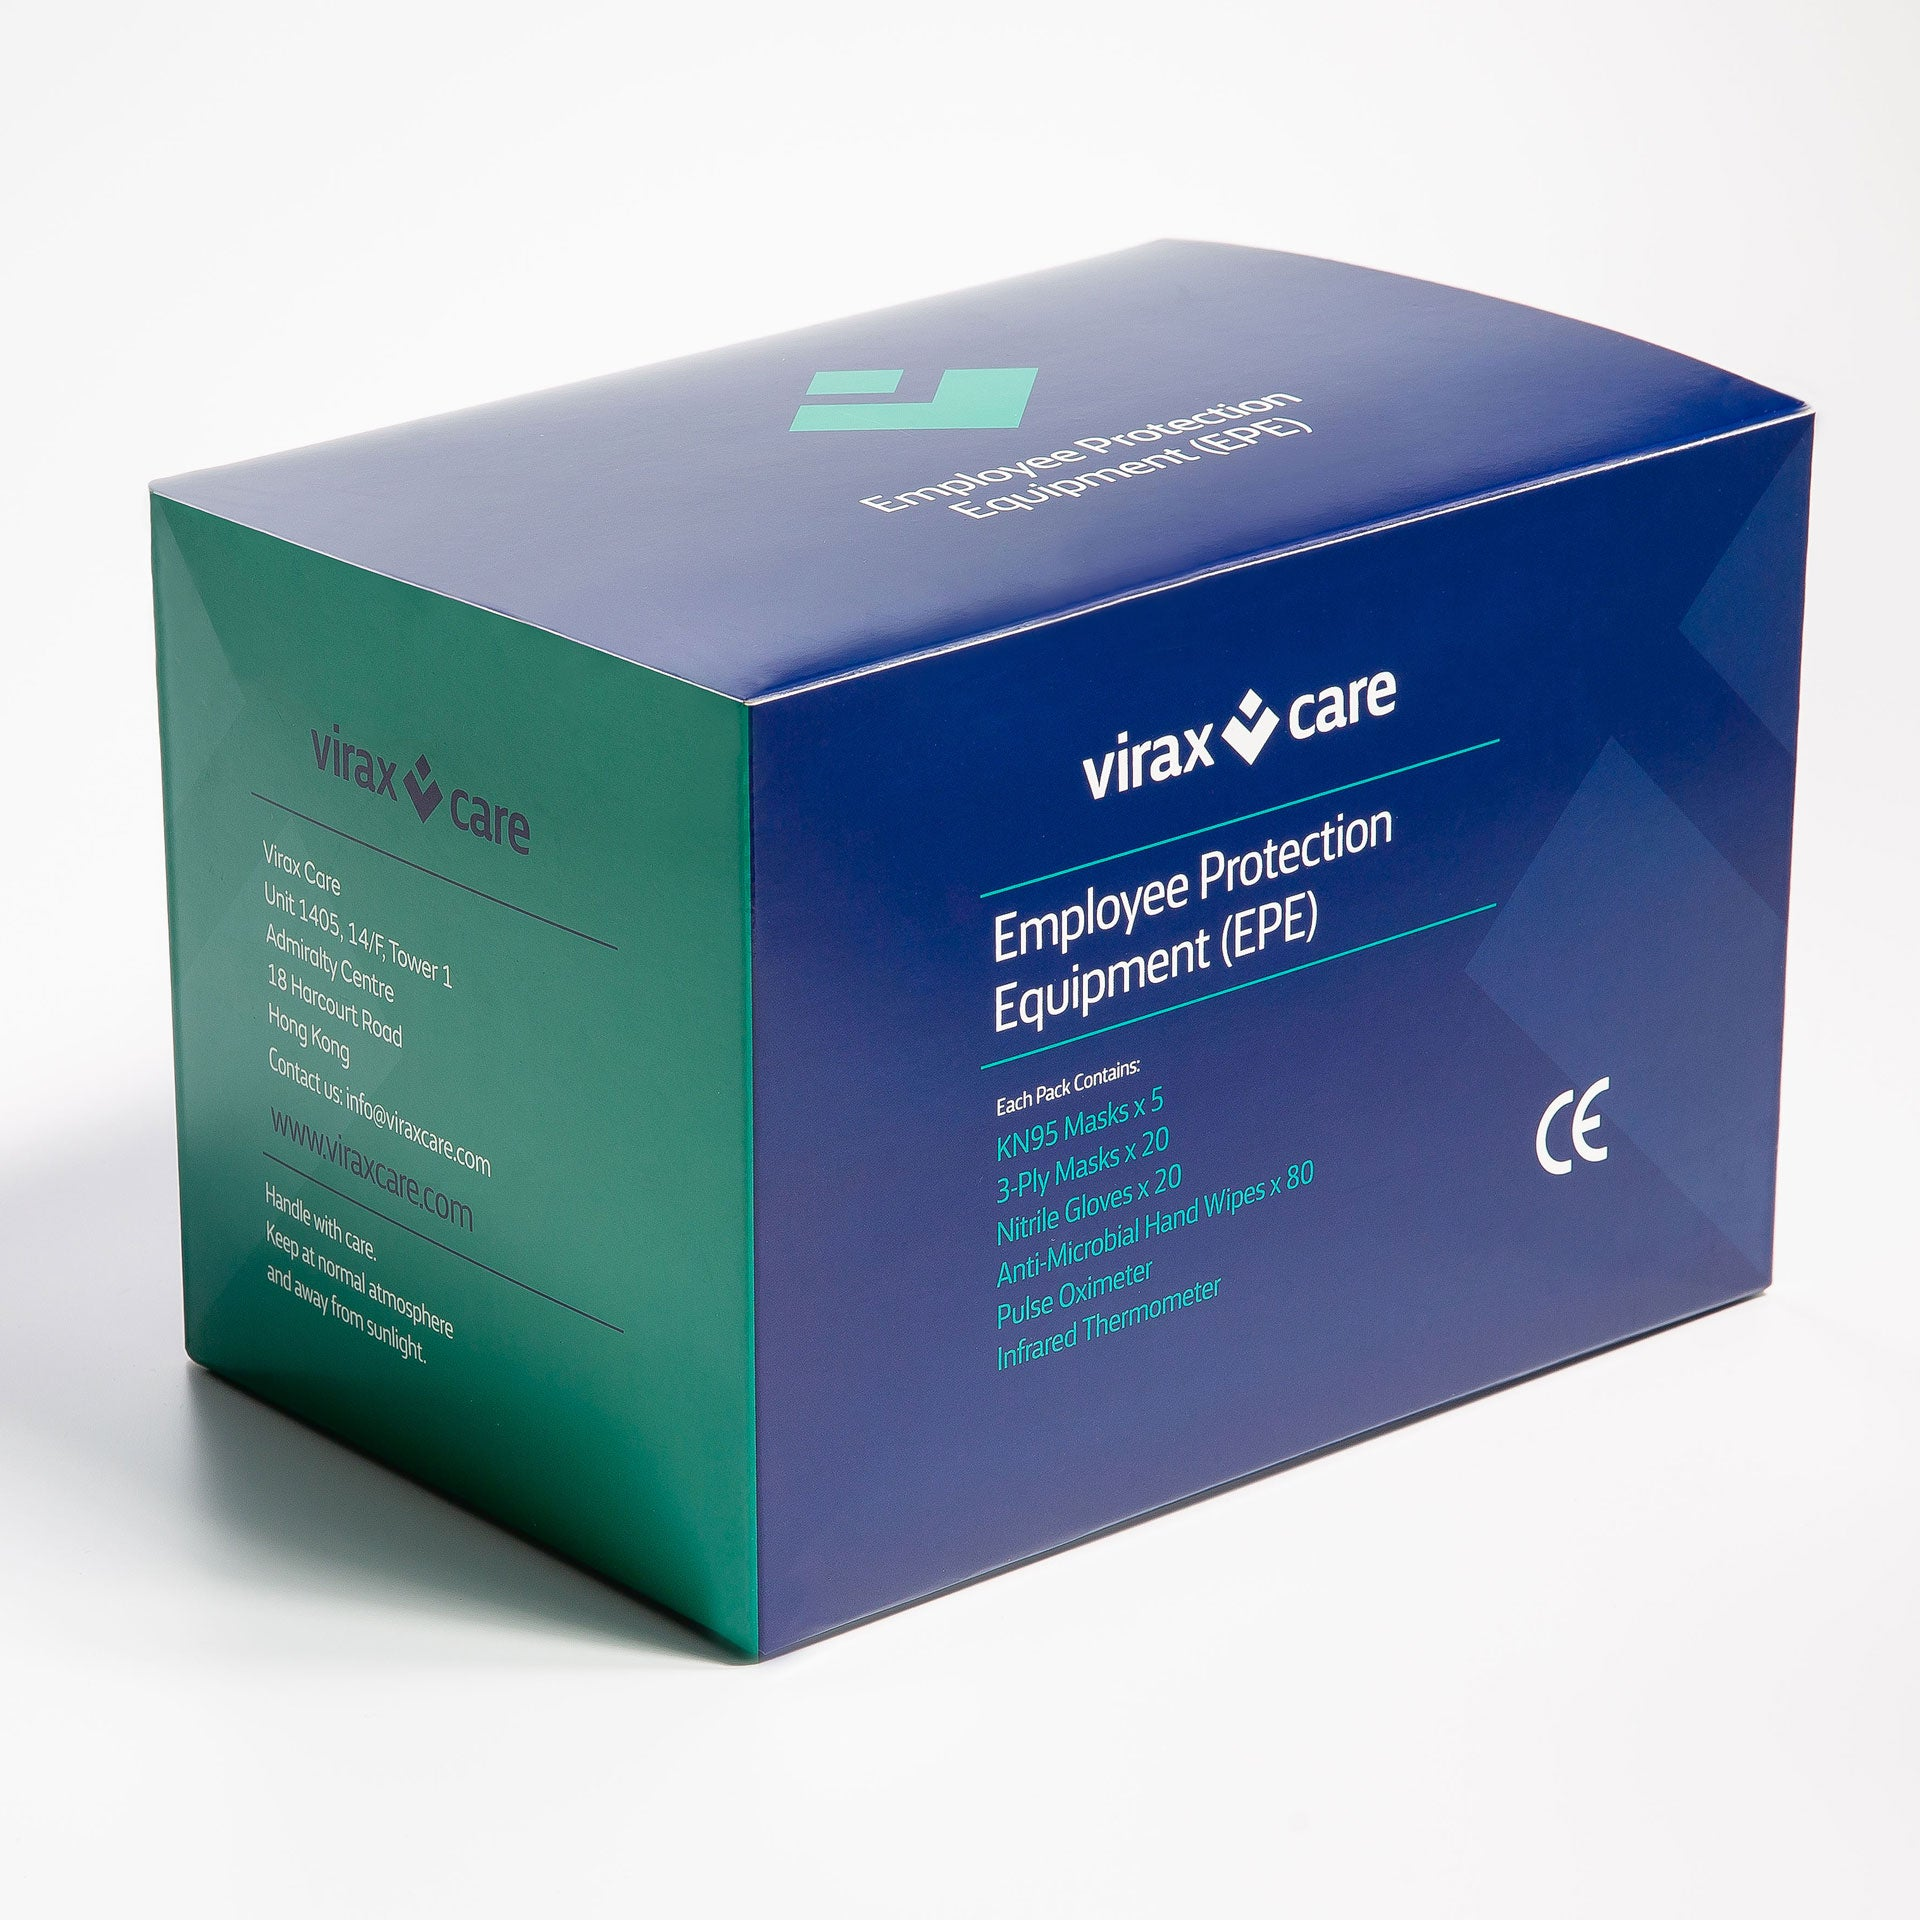 Employee Protection Equipment  (EPE) Plus Box <em>Special offer  £61/$77 per EPE Plus  box, worth over £82/$104*</em>